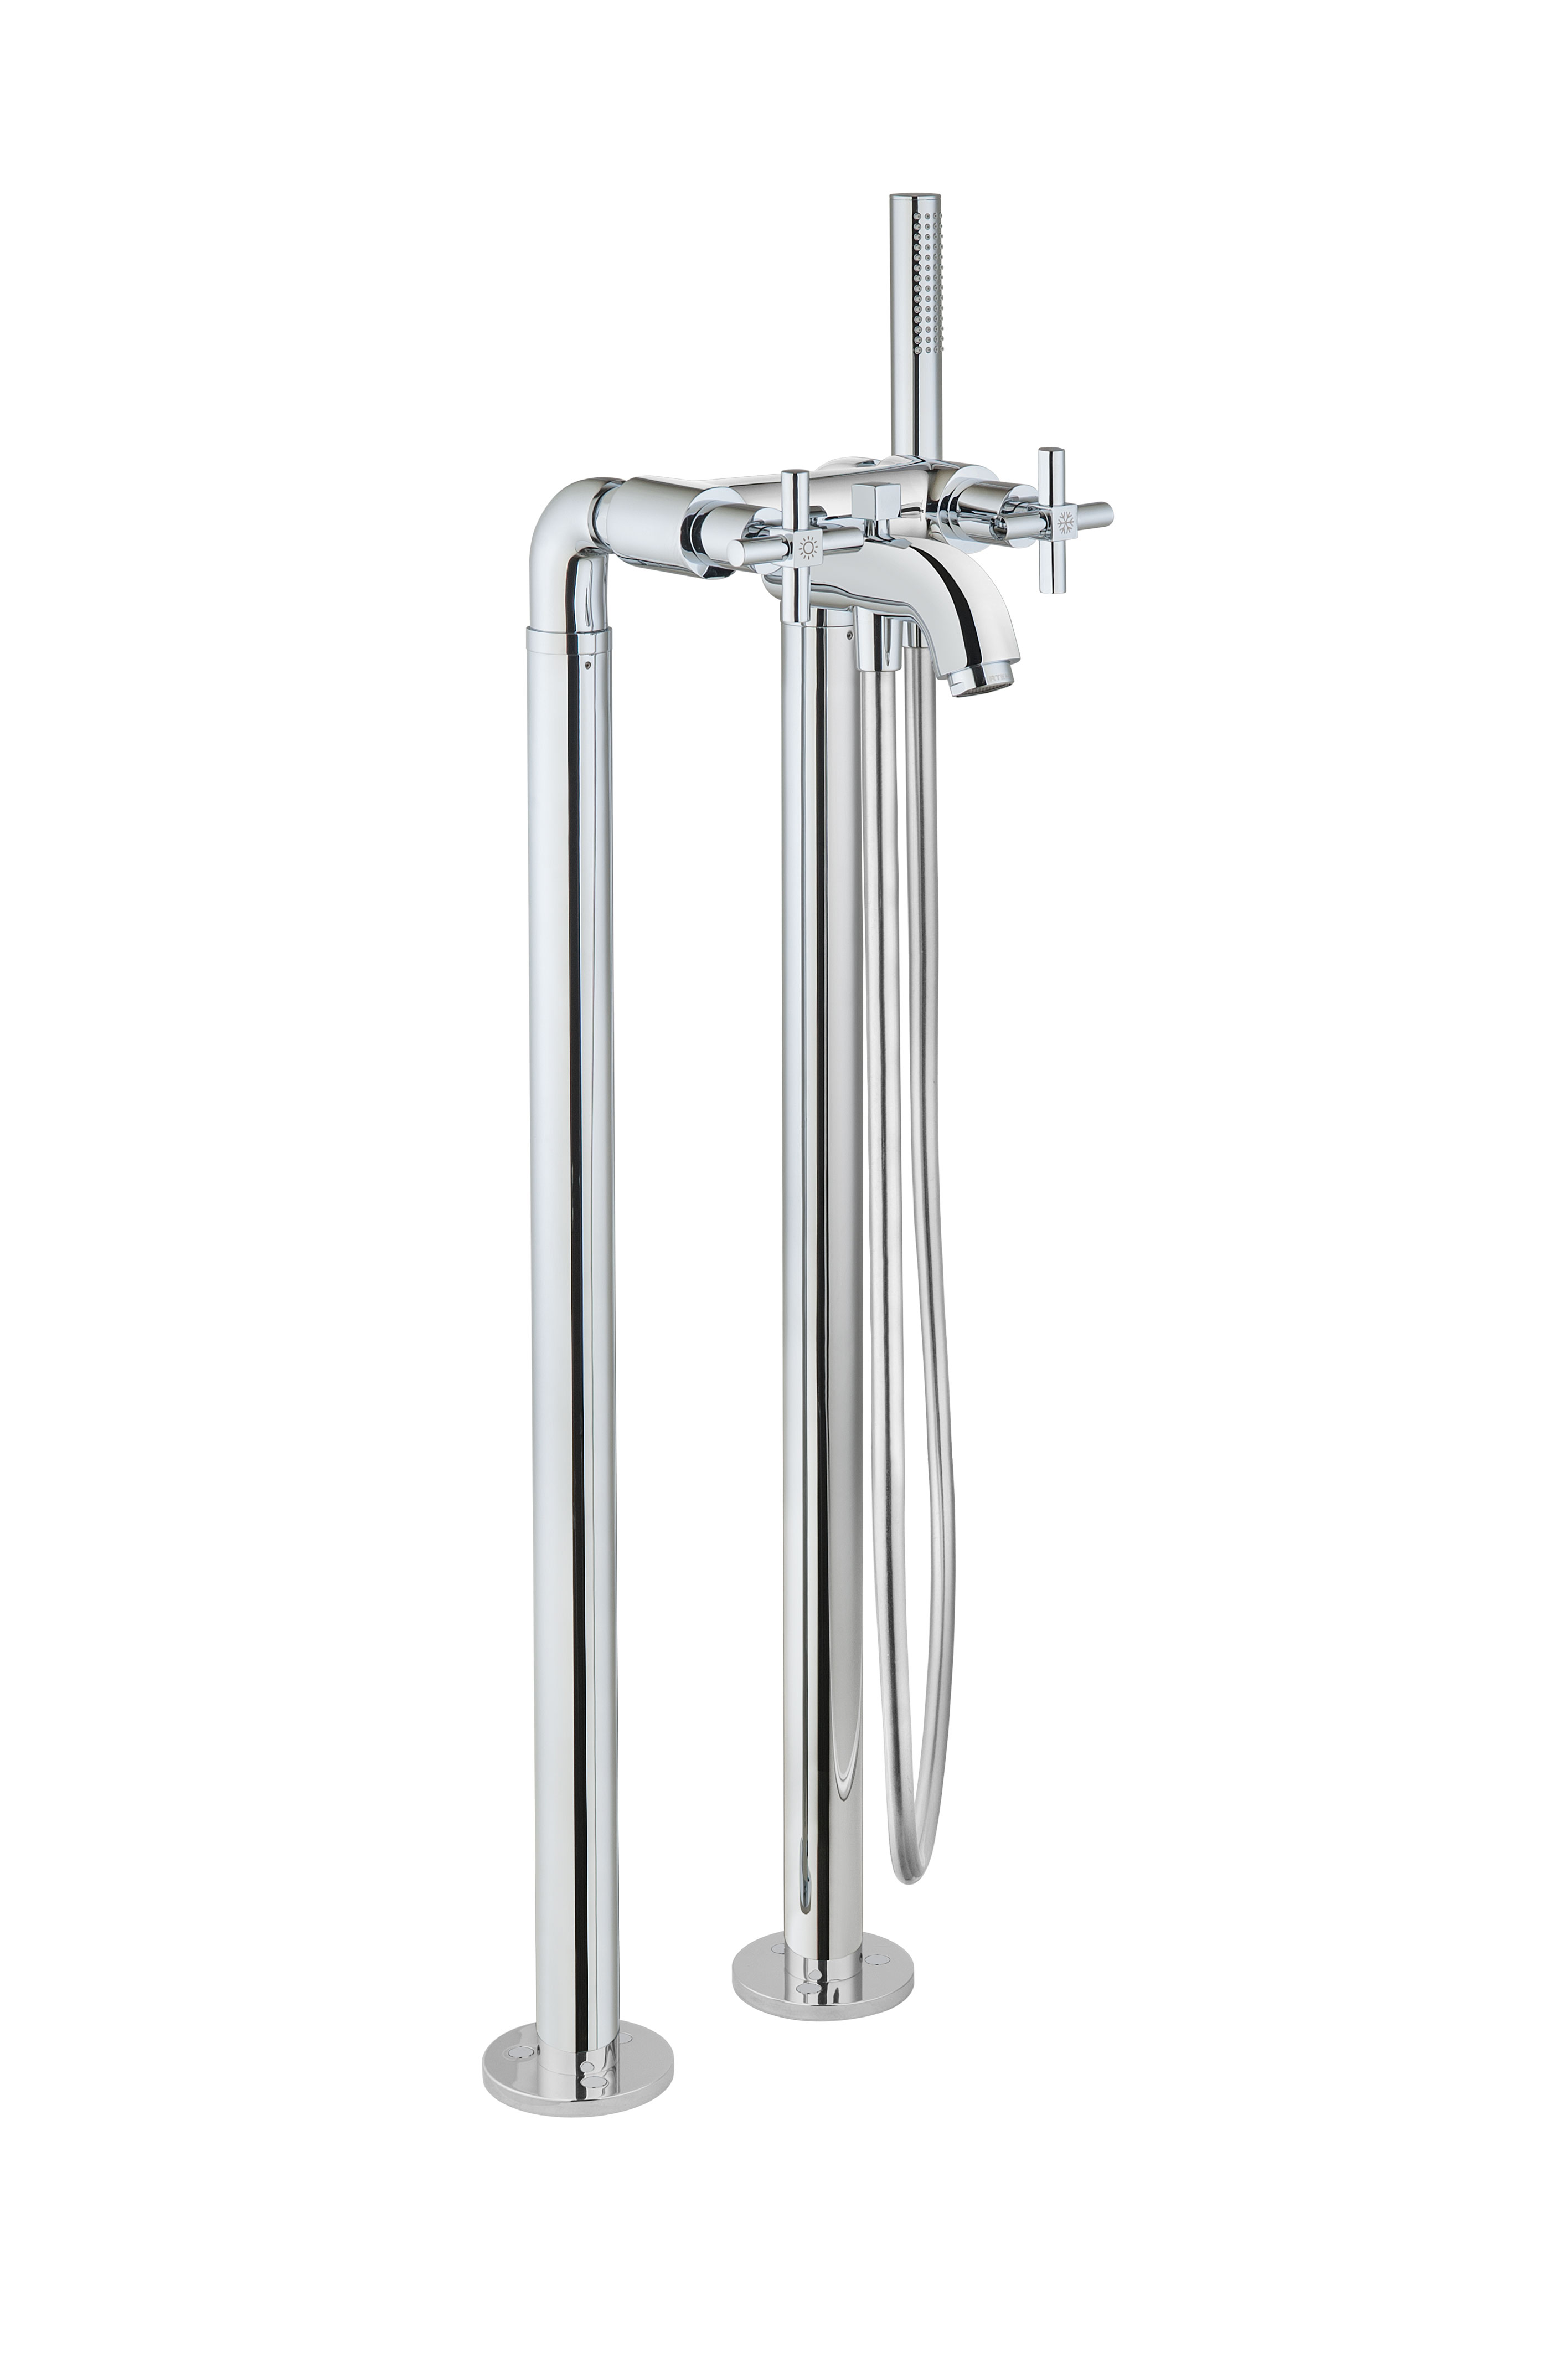 click on Floorstanding Bath Filler image to enlarge